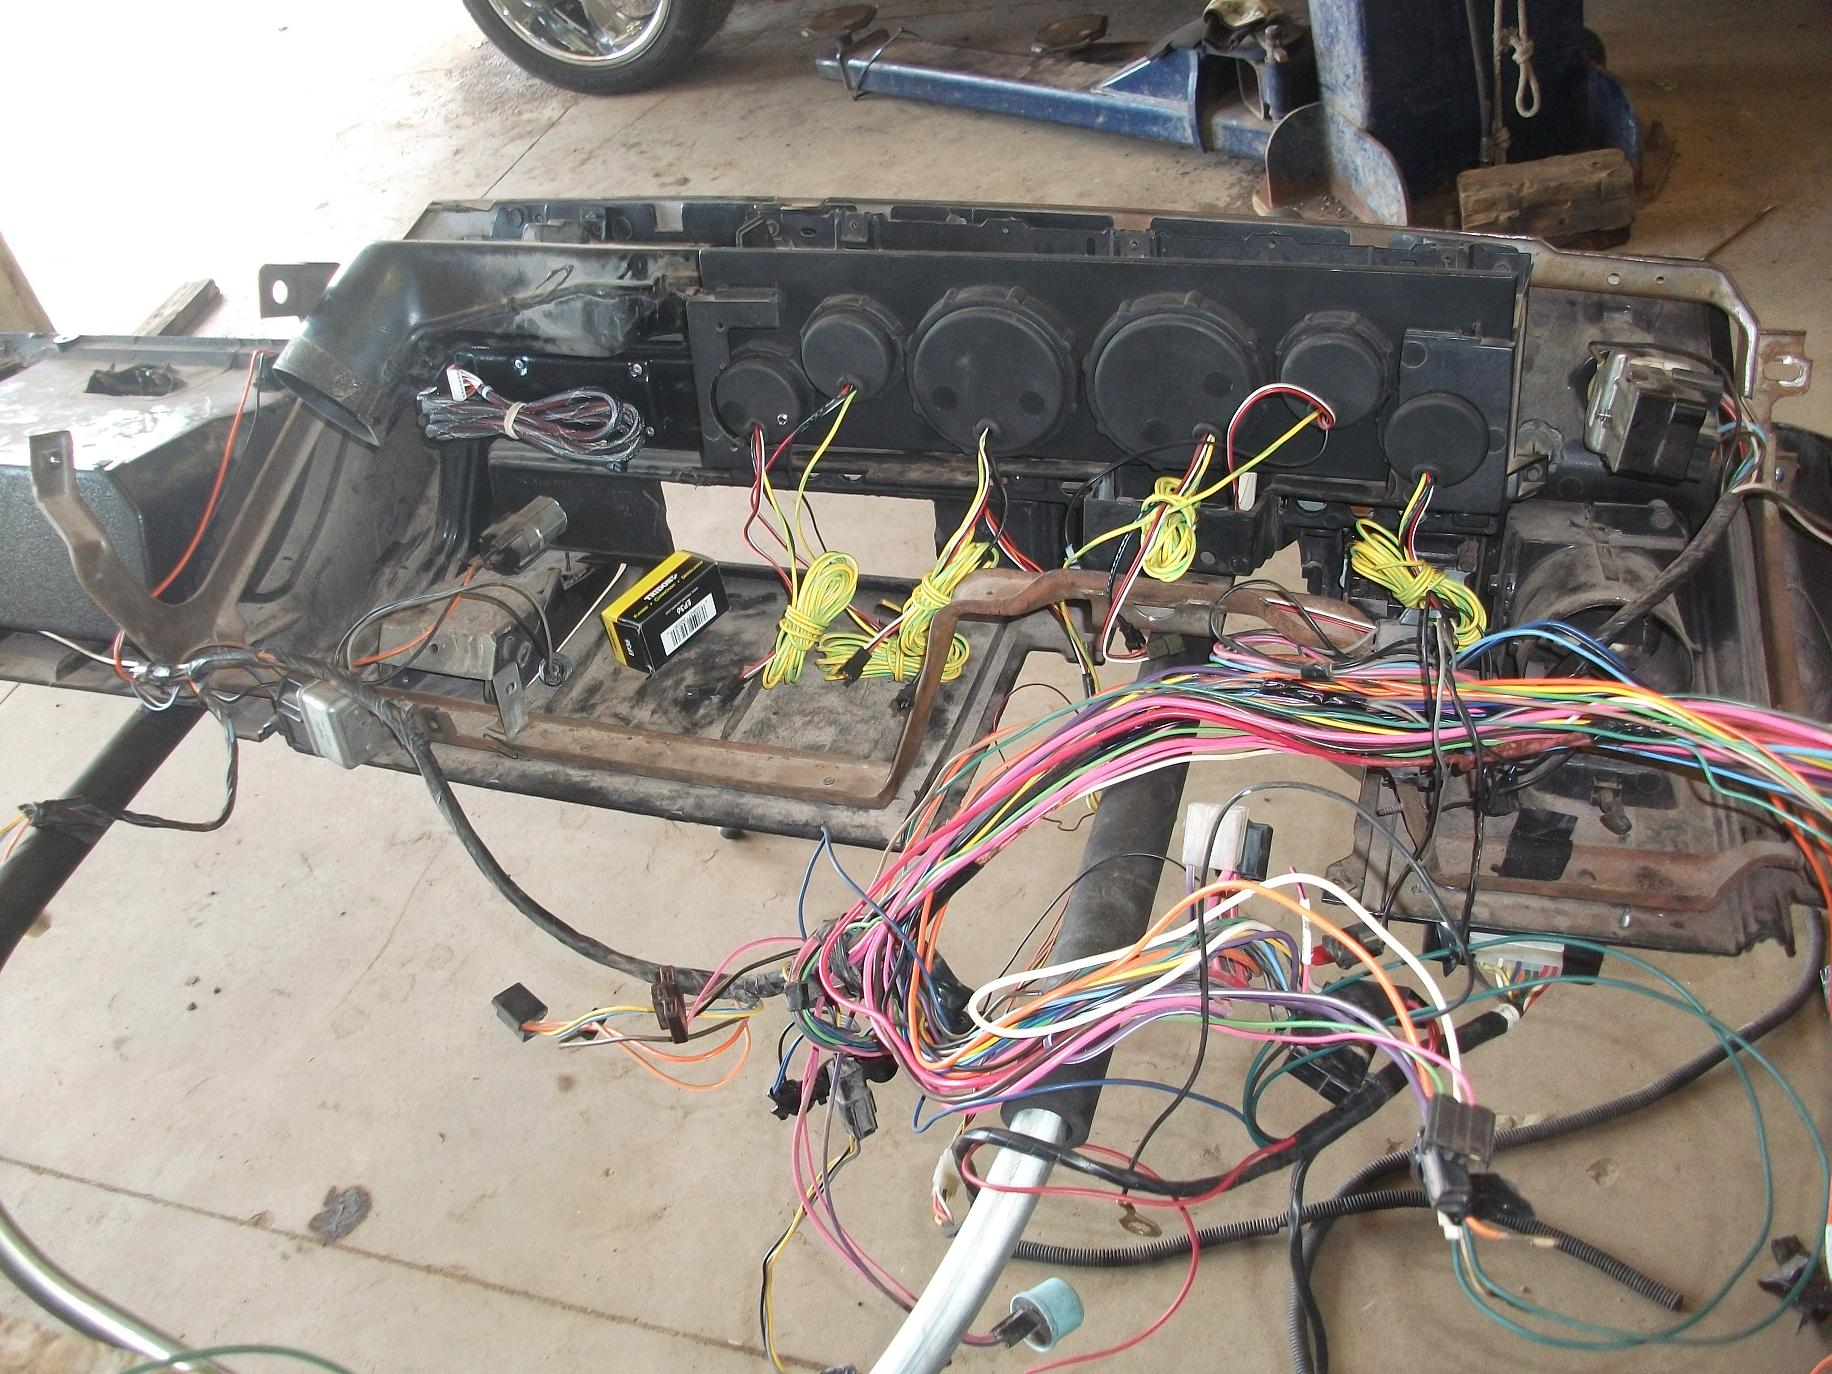 Wiring Diagram Furthermore Buick Regal Wiring Diagram On 68 Chevelle